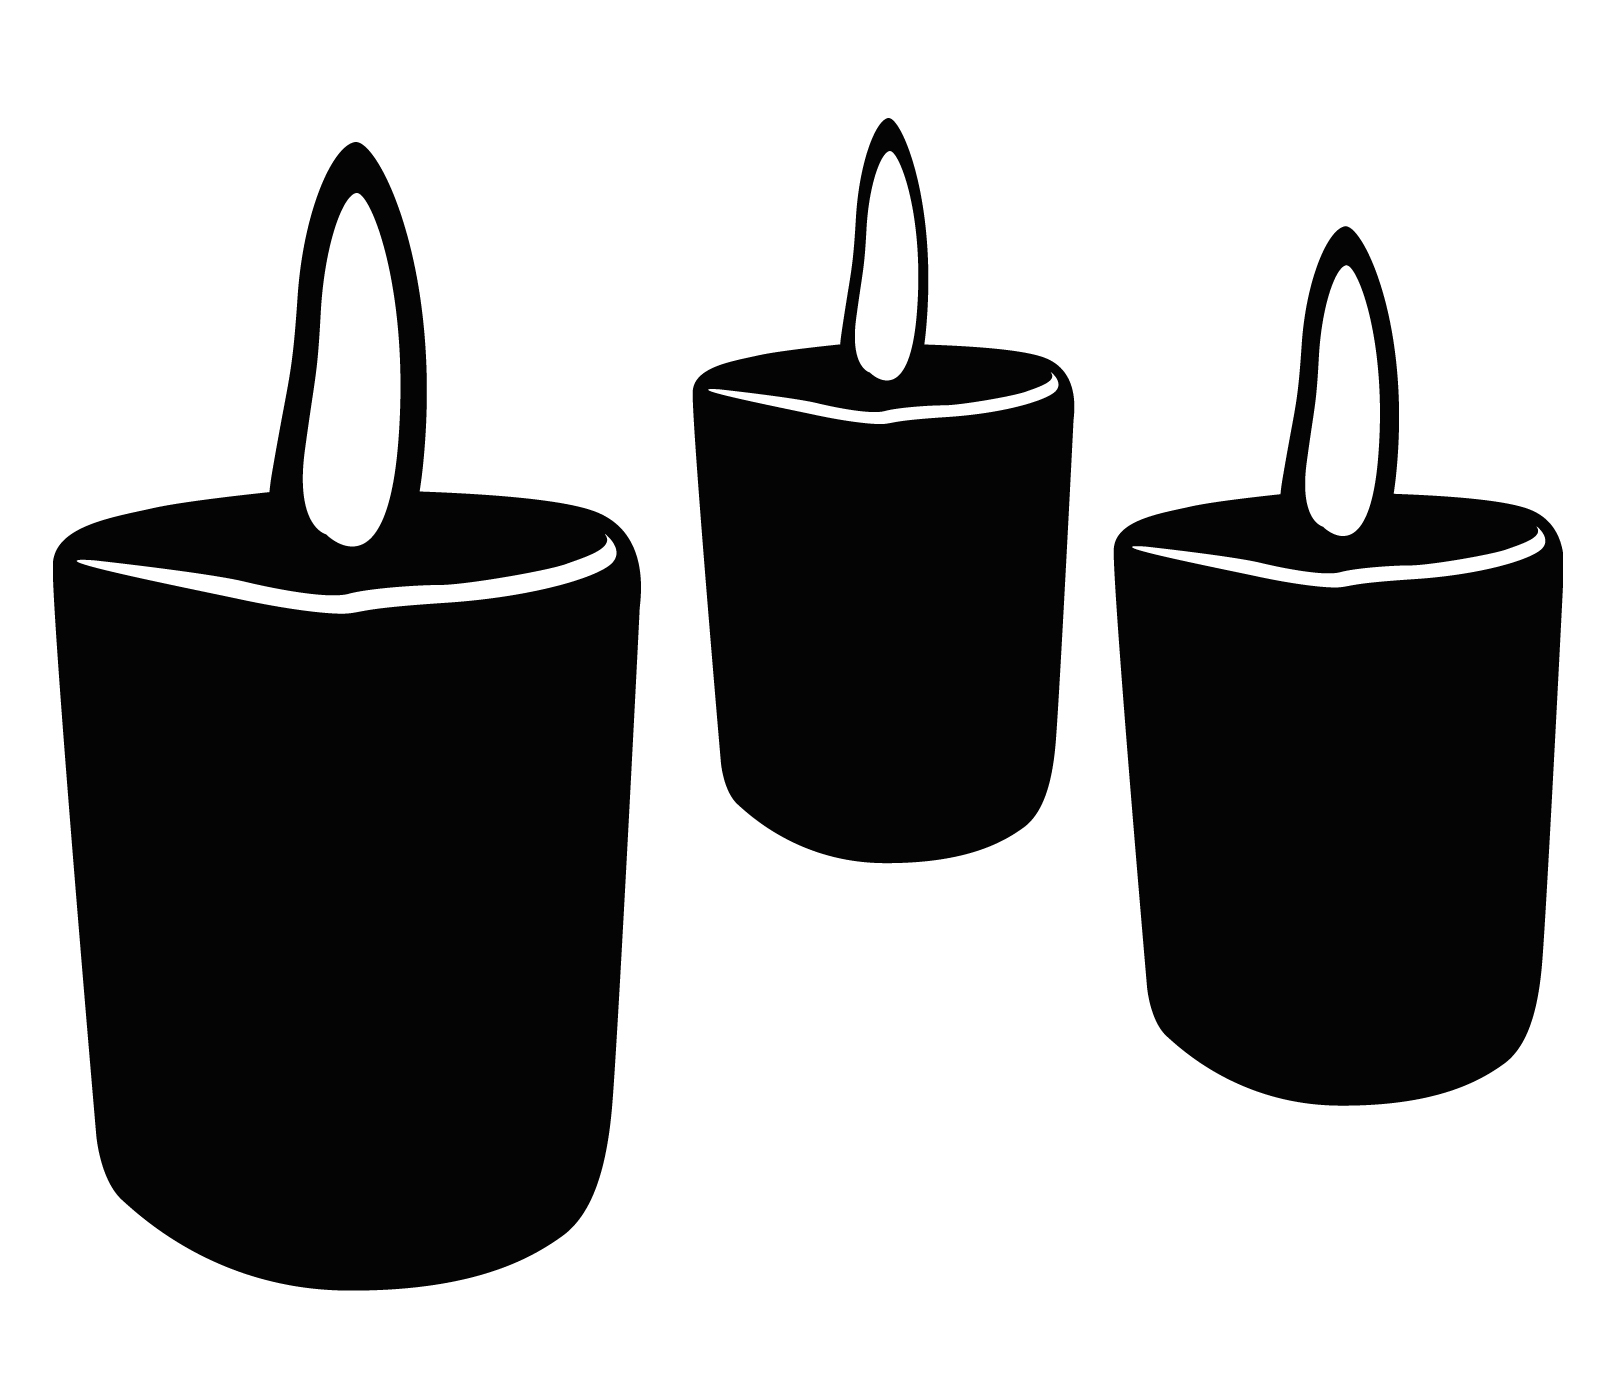 Taper free images image. Candles clipart memorial candle